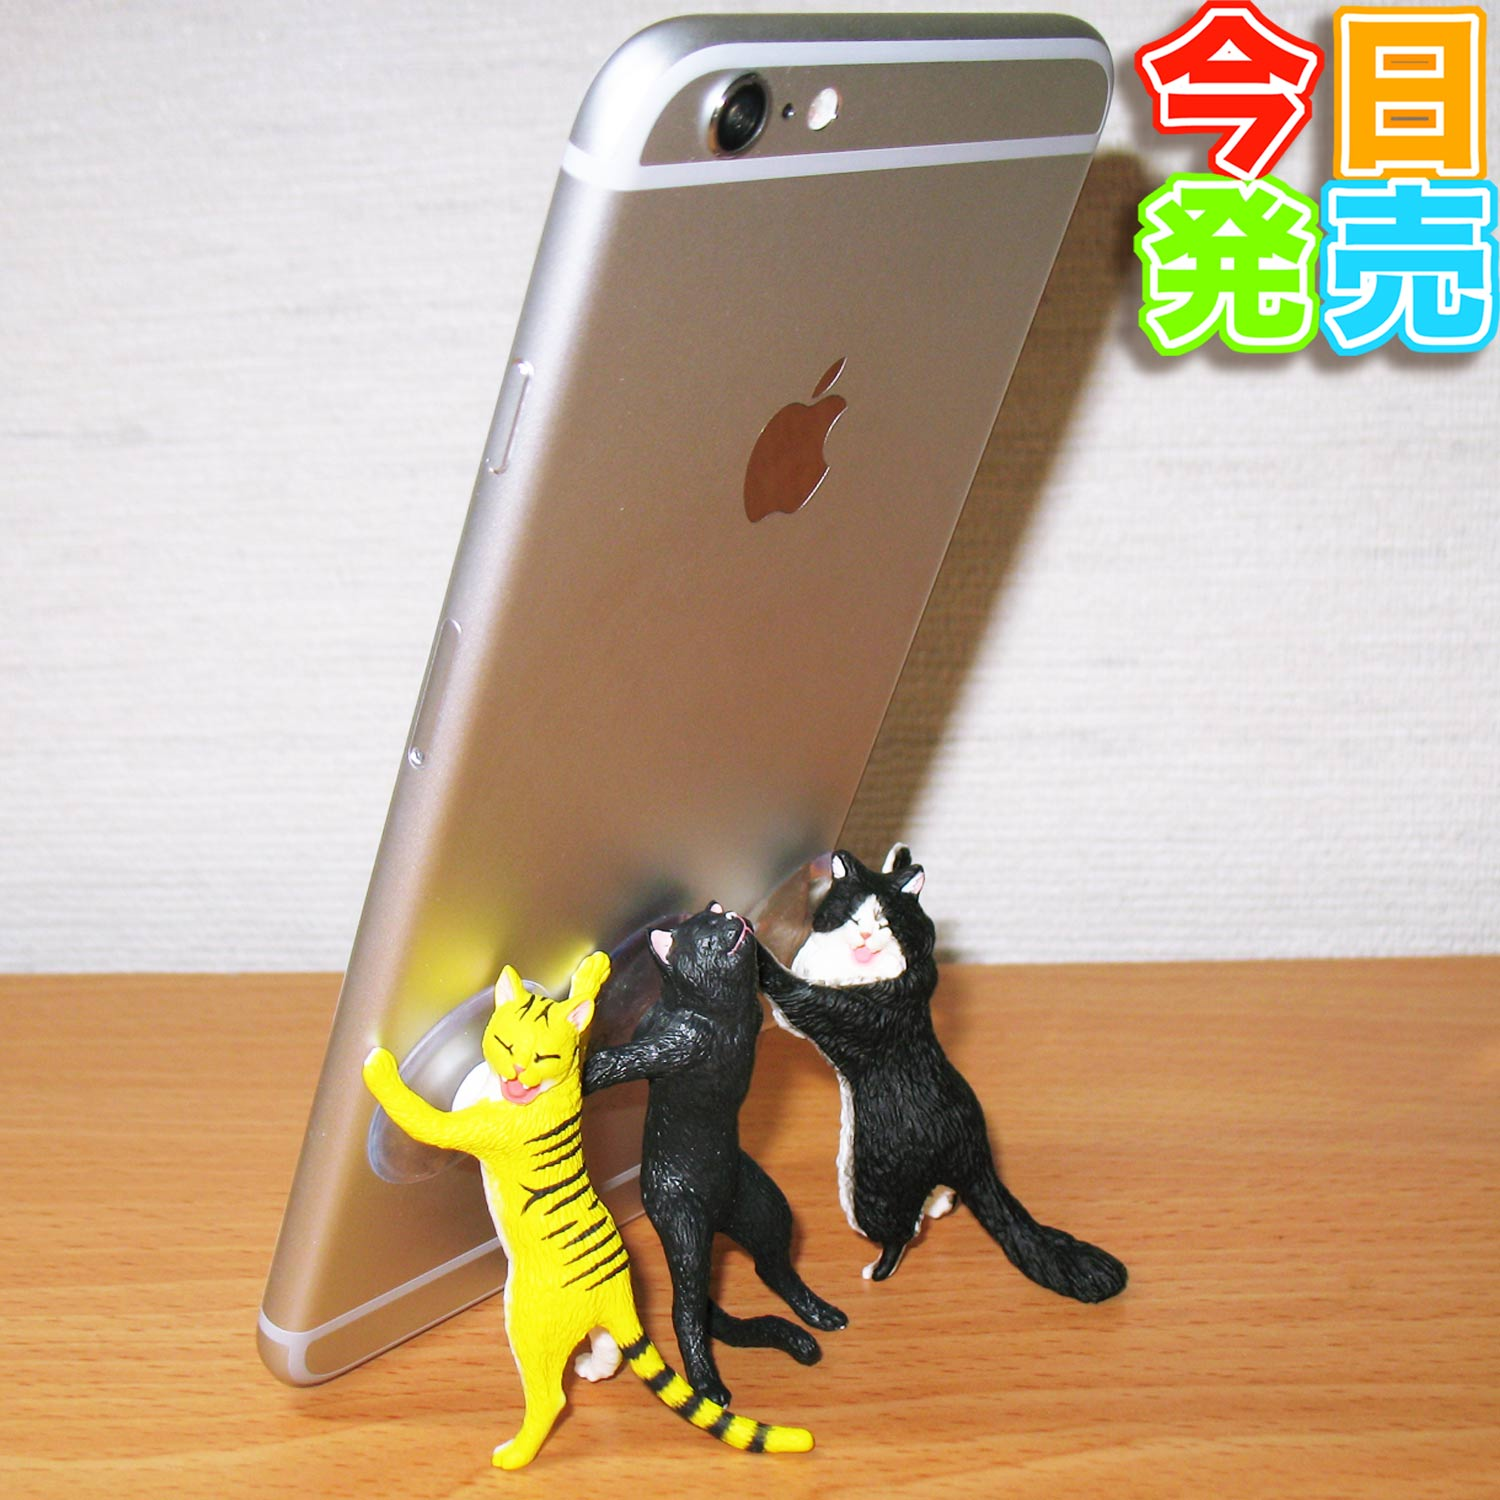 『iPhone6 Plus』と『iPhone6』や『Galaxy Note』